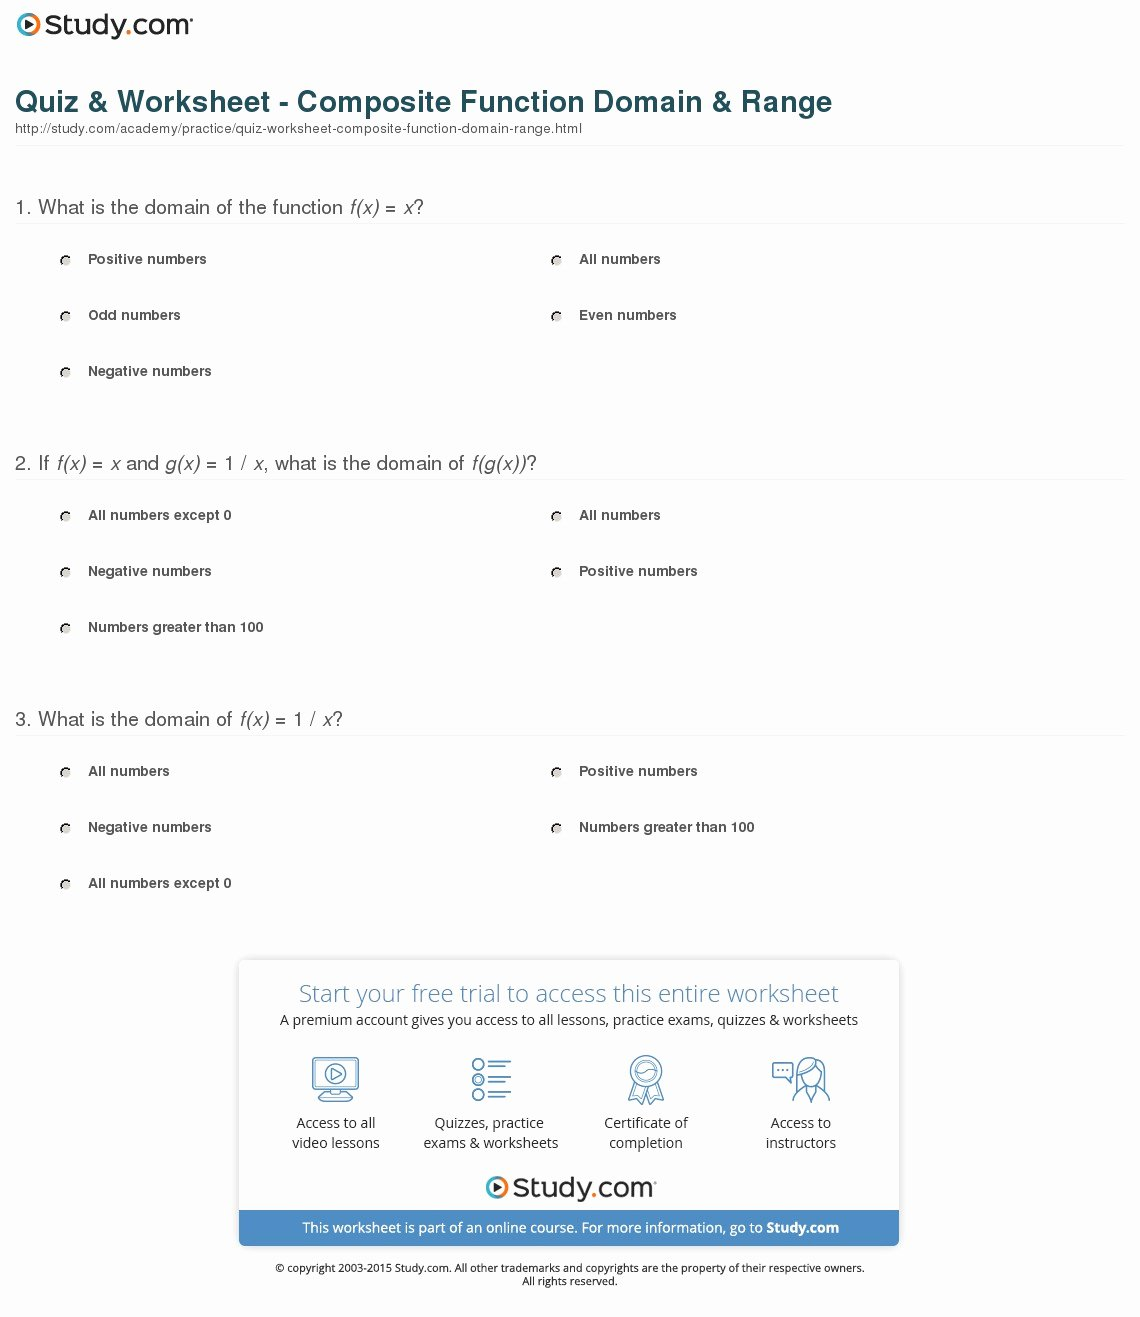 Composite Functions Worksheet Answers Beautiful Quiz & Worksheet Posite Function Domain & Range